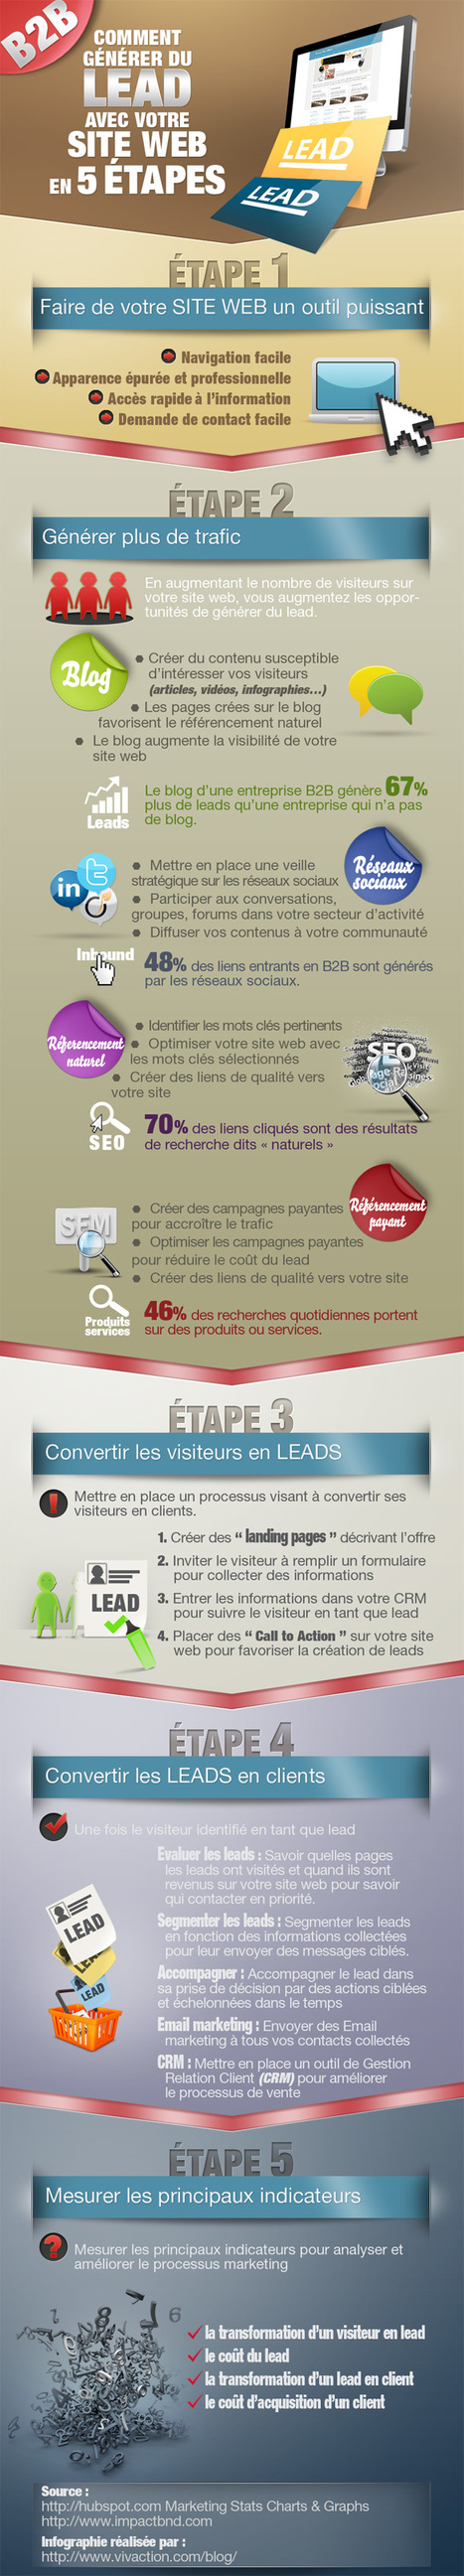 Infographie - Générer du lead avec votre site internet B2B en 5 étapes | Time to Learn | Scoop.it